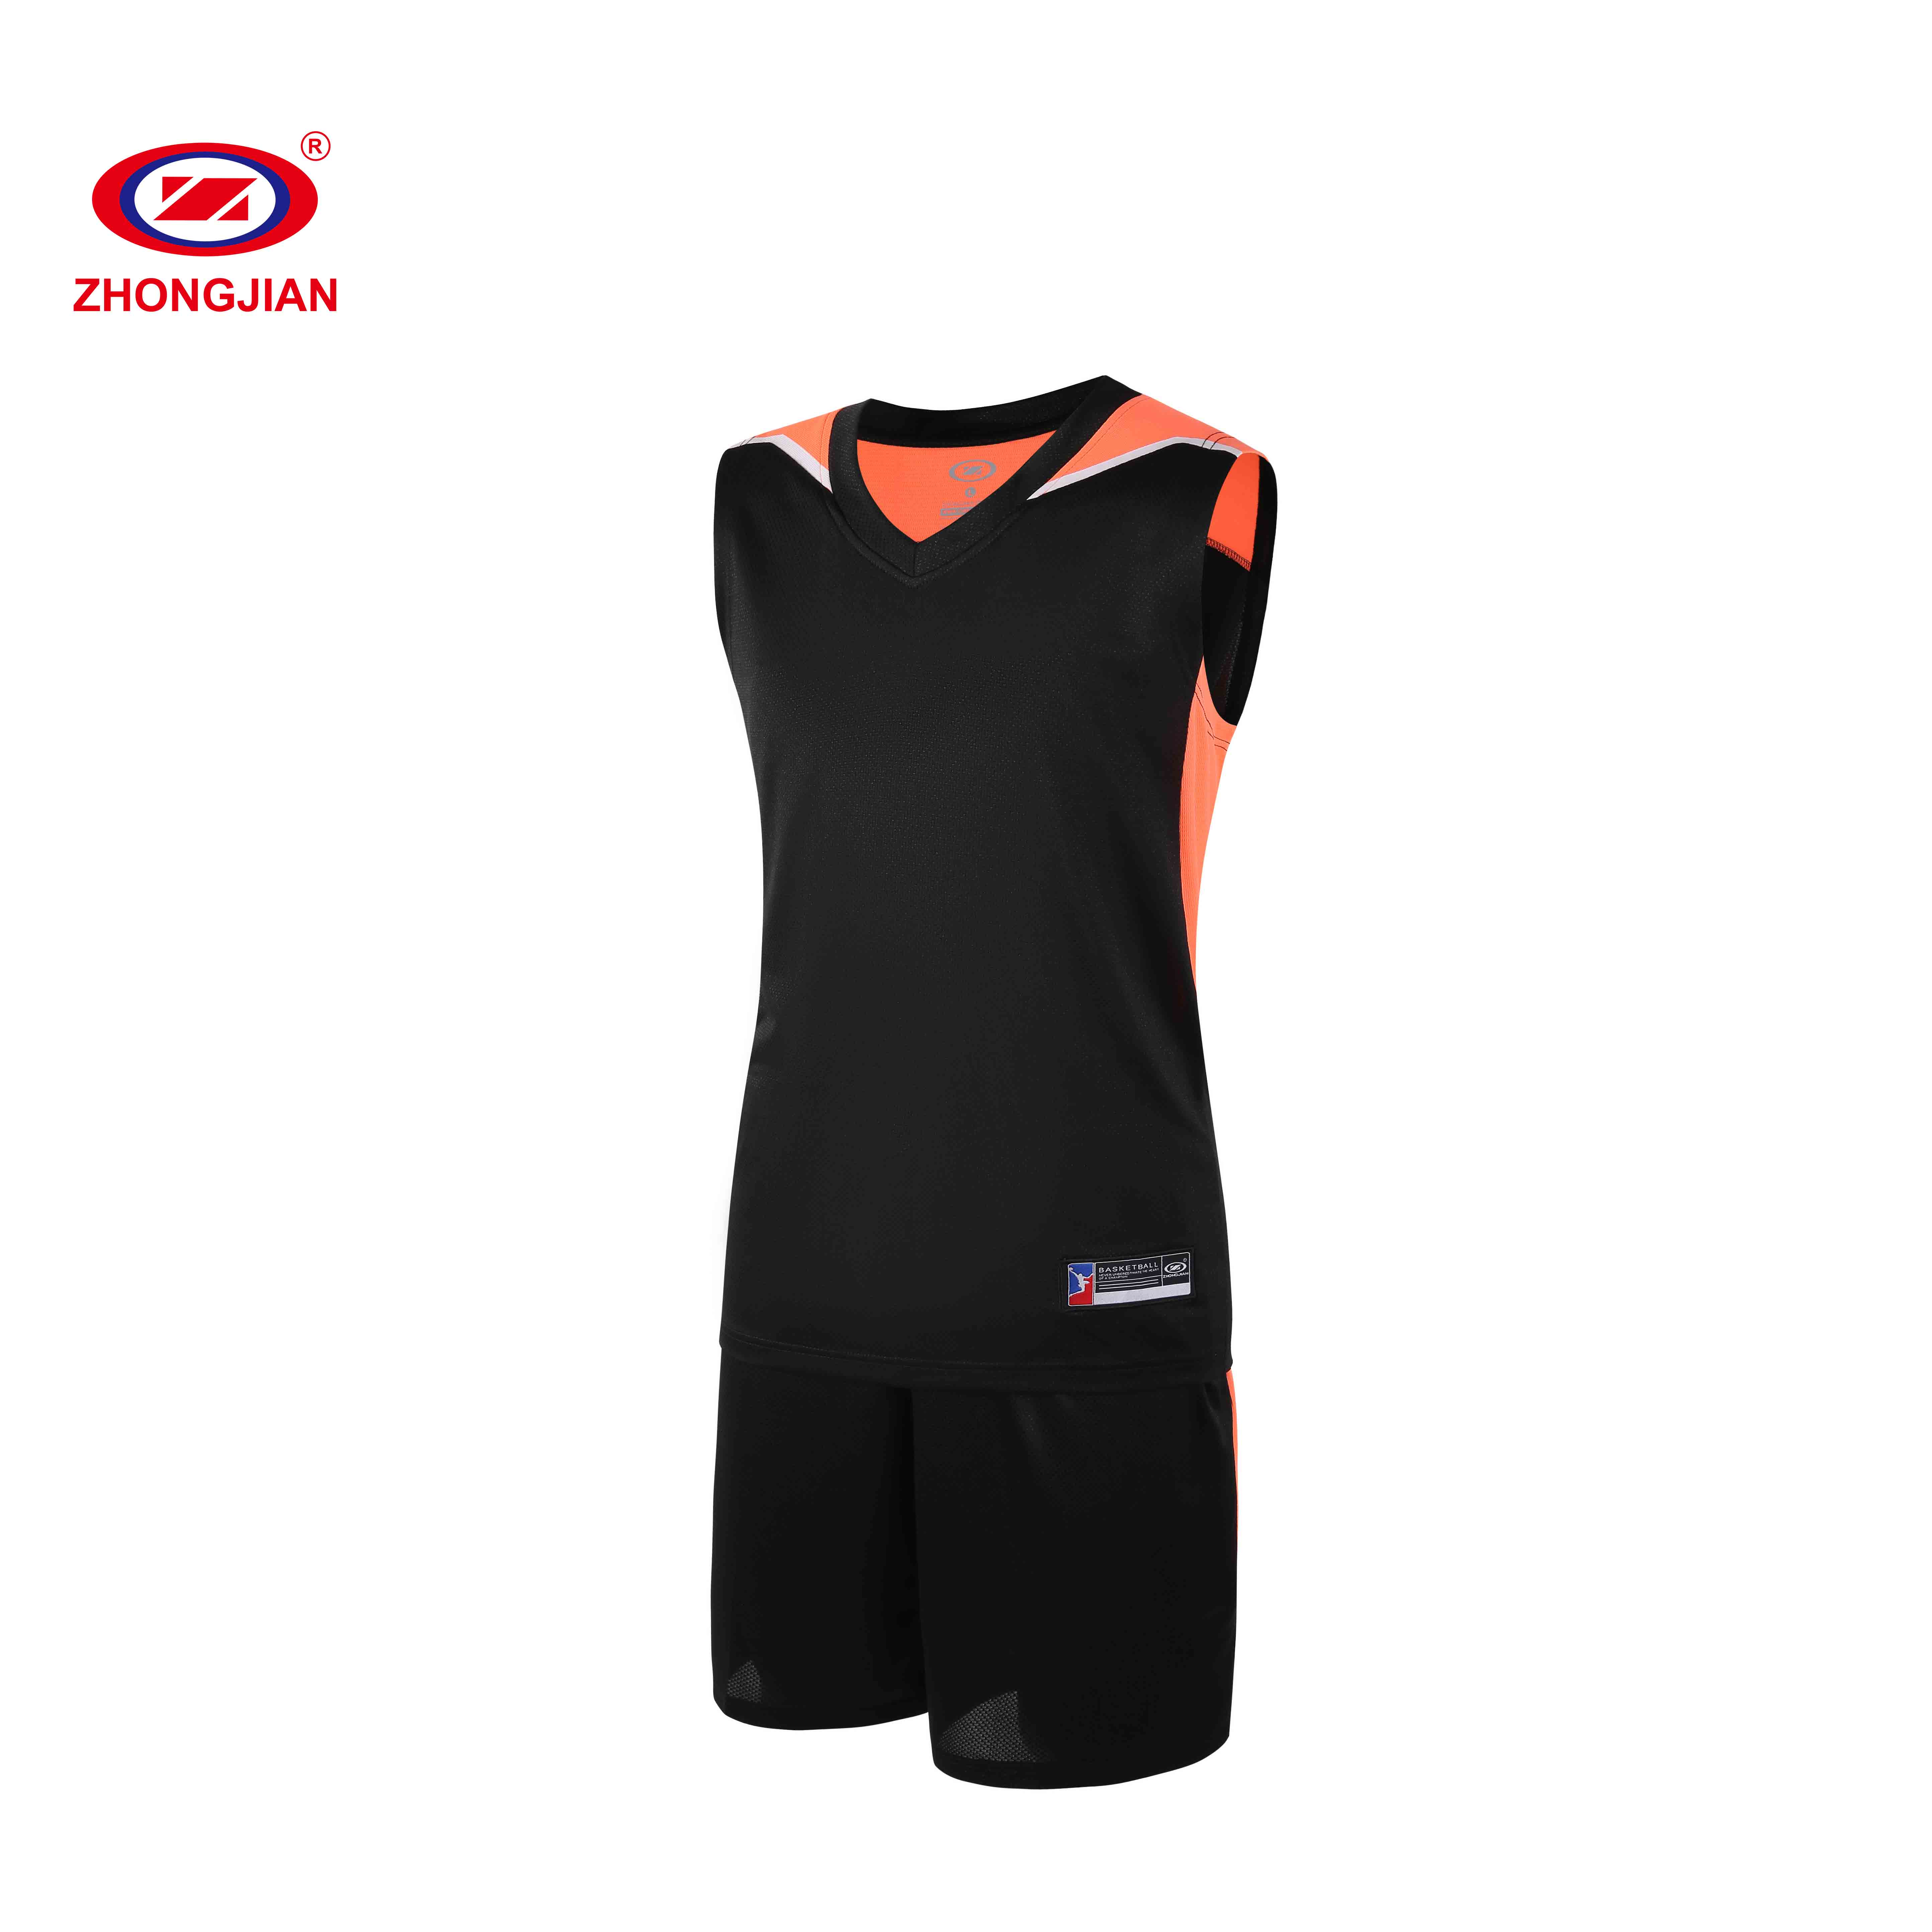 Gym trainingsanzug männer training tragen custom basketball jersey uniformen sets